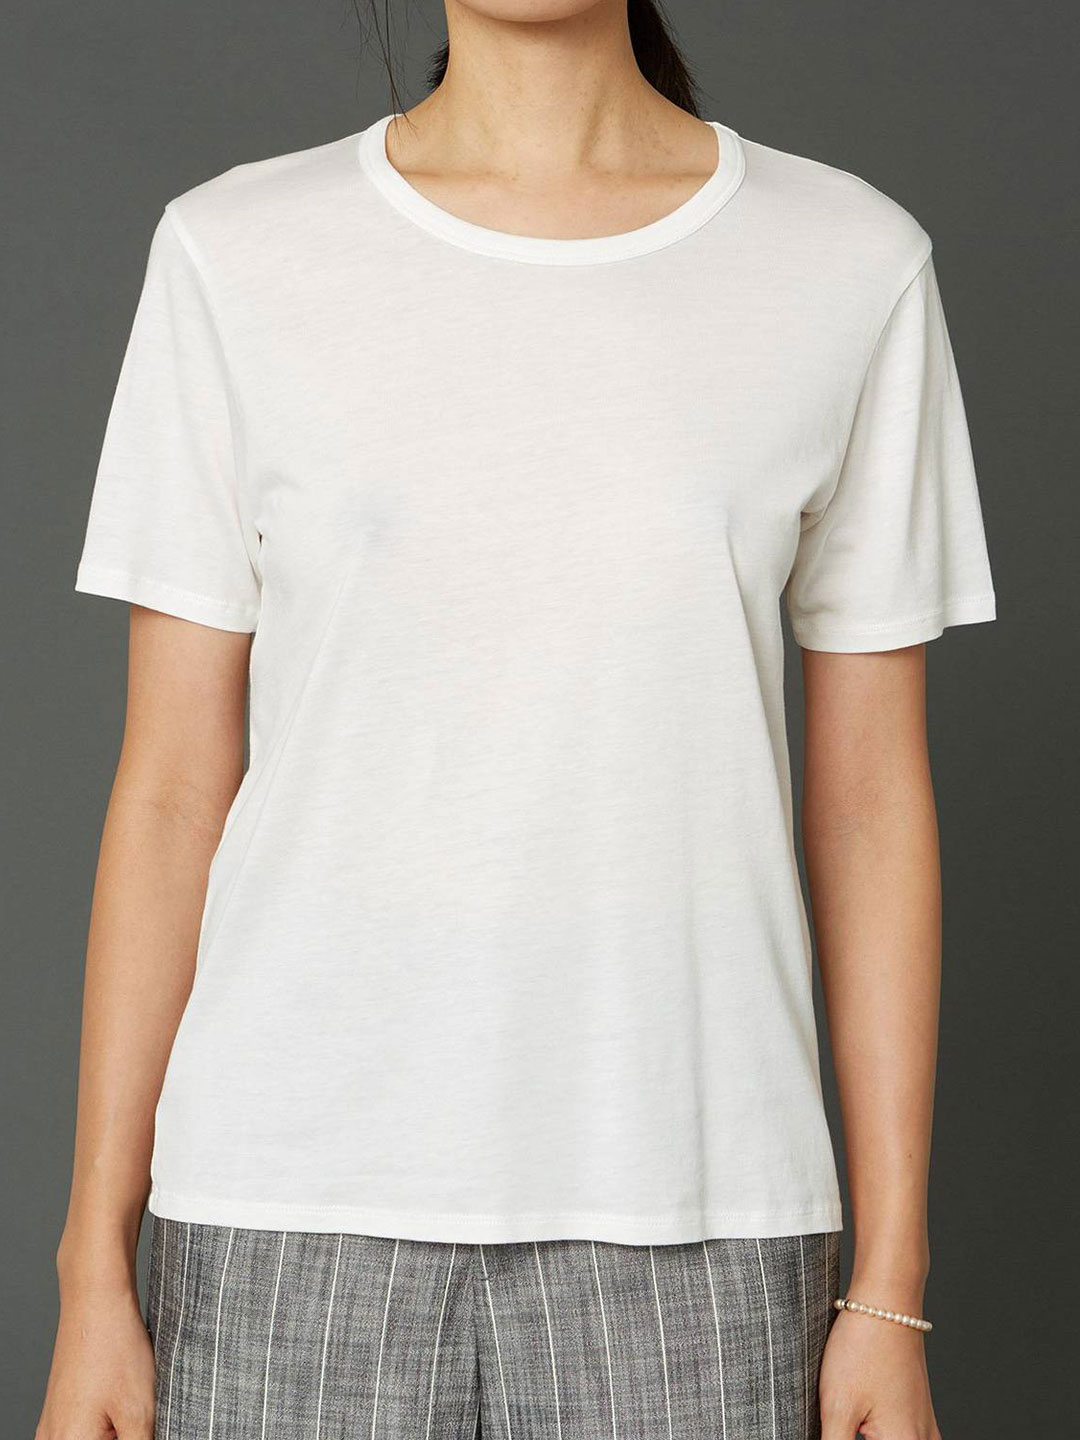 A1074-One-Edit-Tee-Hope-Sthlm-Off-White-Front